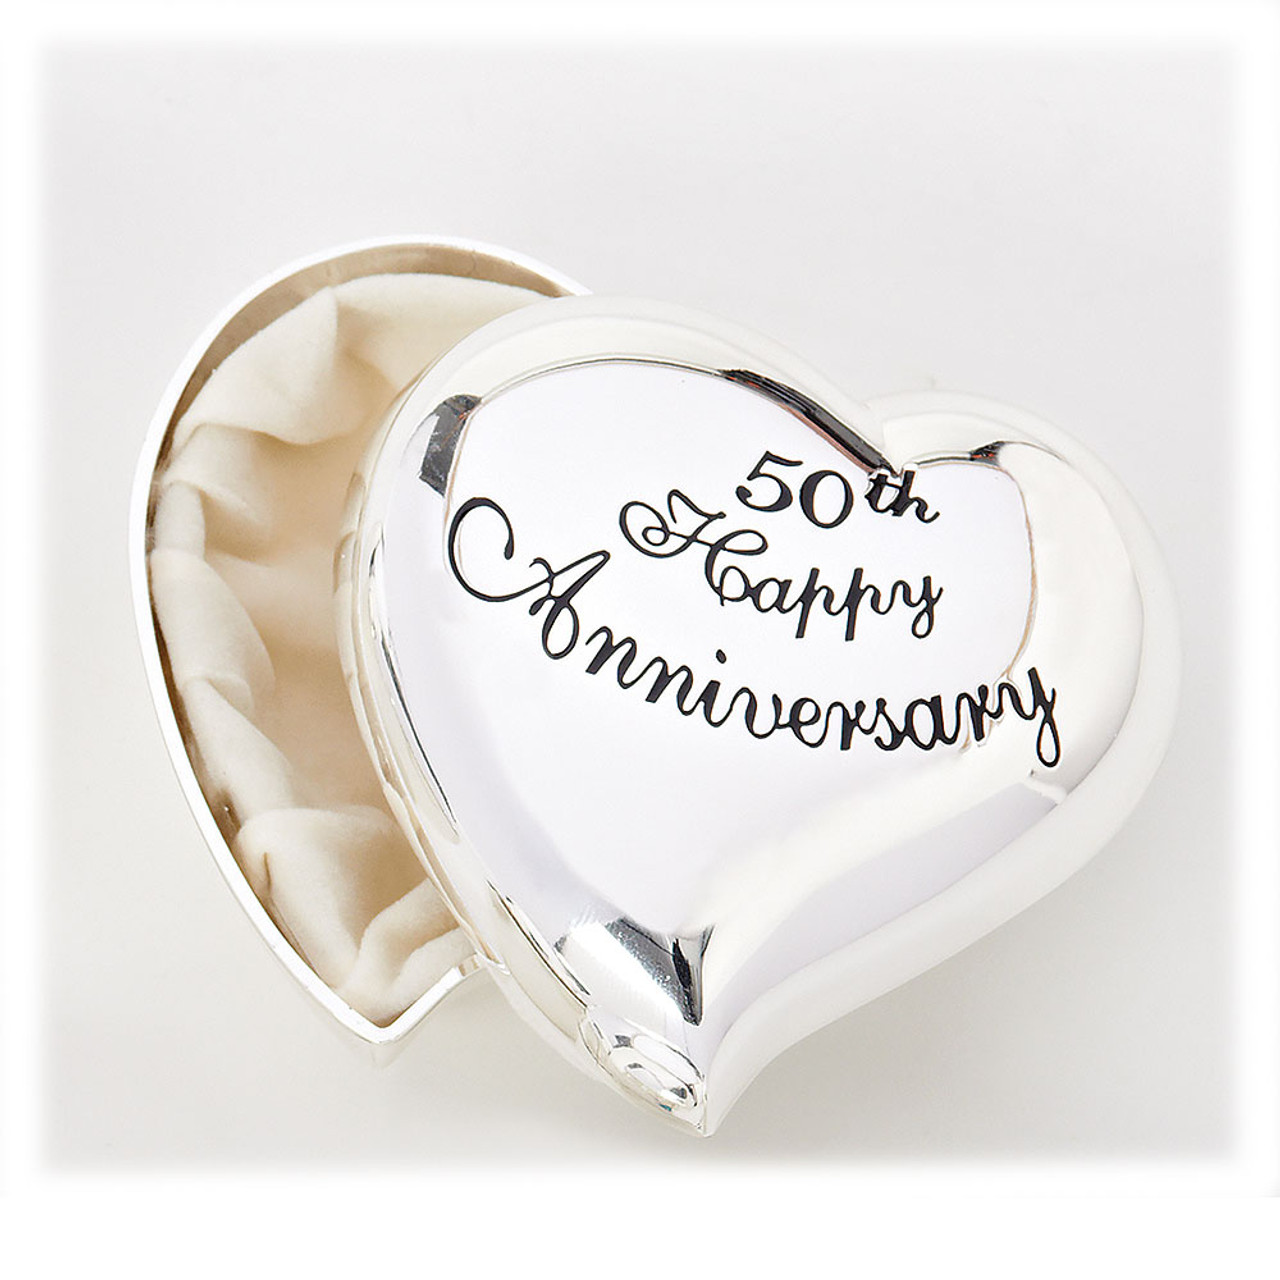 50th Wedding Anniversary Heart-Shaped Box